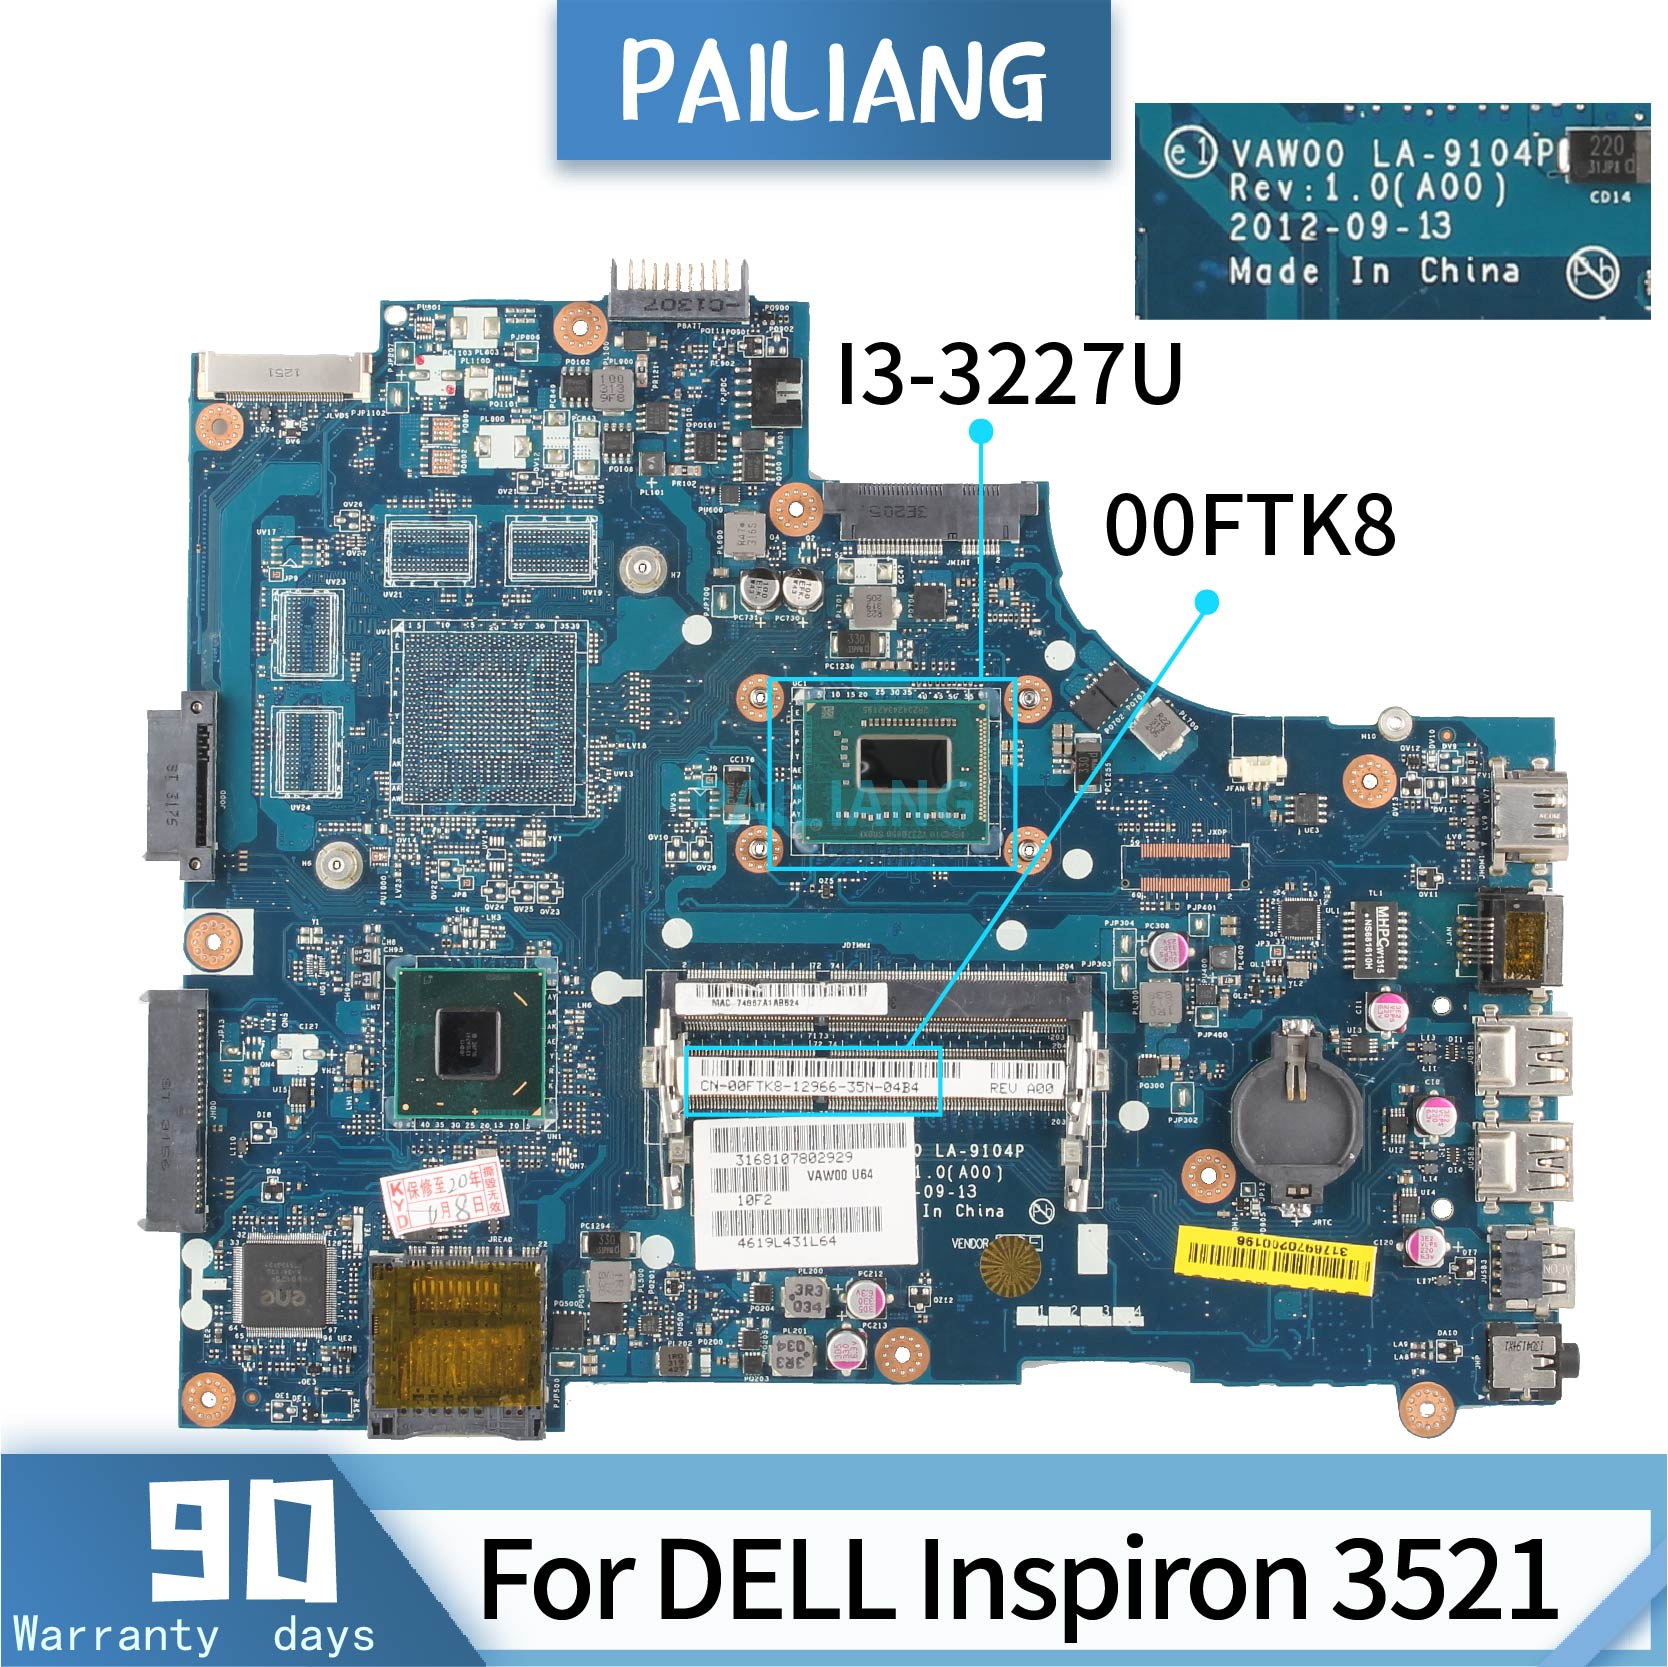 PAILIANG Laptop Motherboard For DELL Inspiron 5521 3521 Core SR0XF I3-3227U Mainboard 00FTK8 LA-9104P TESTED DDR3